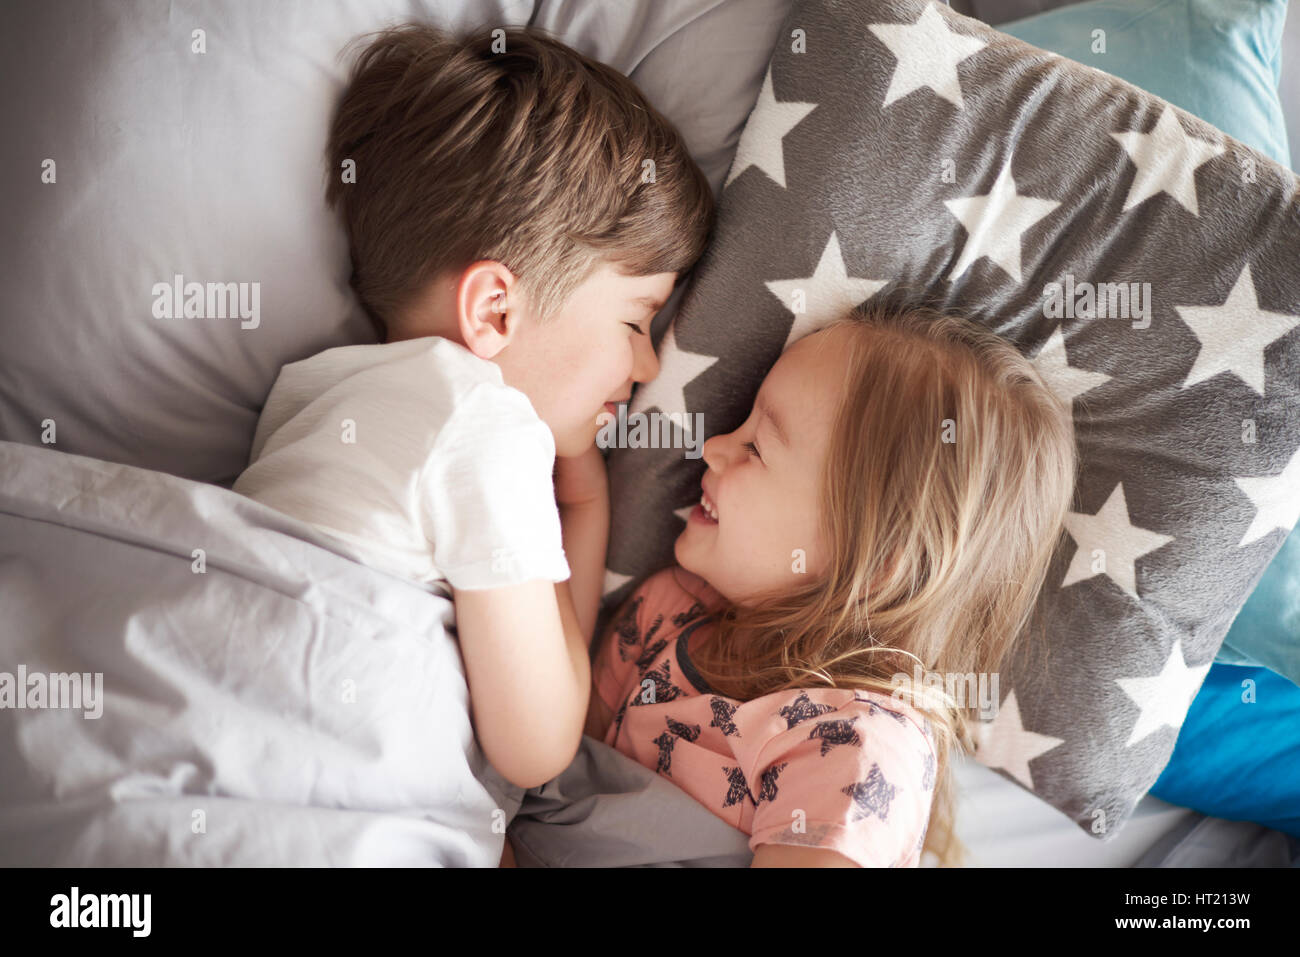 High angle view on sleeping siblings - Stock Image